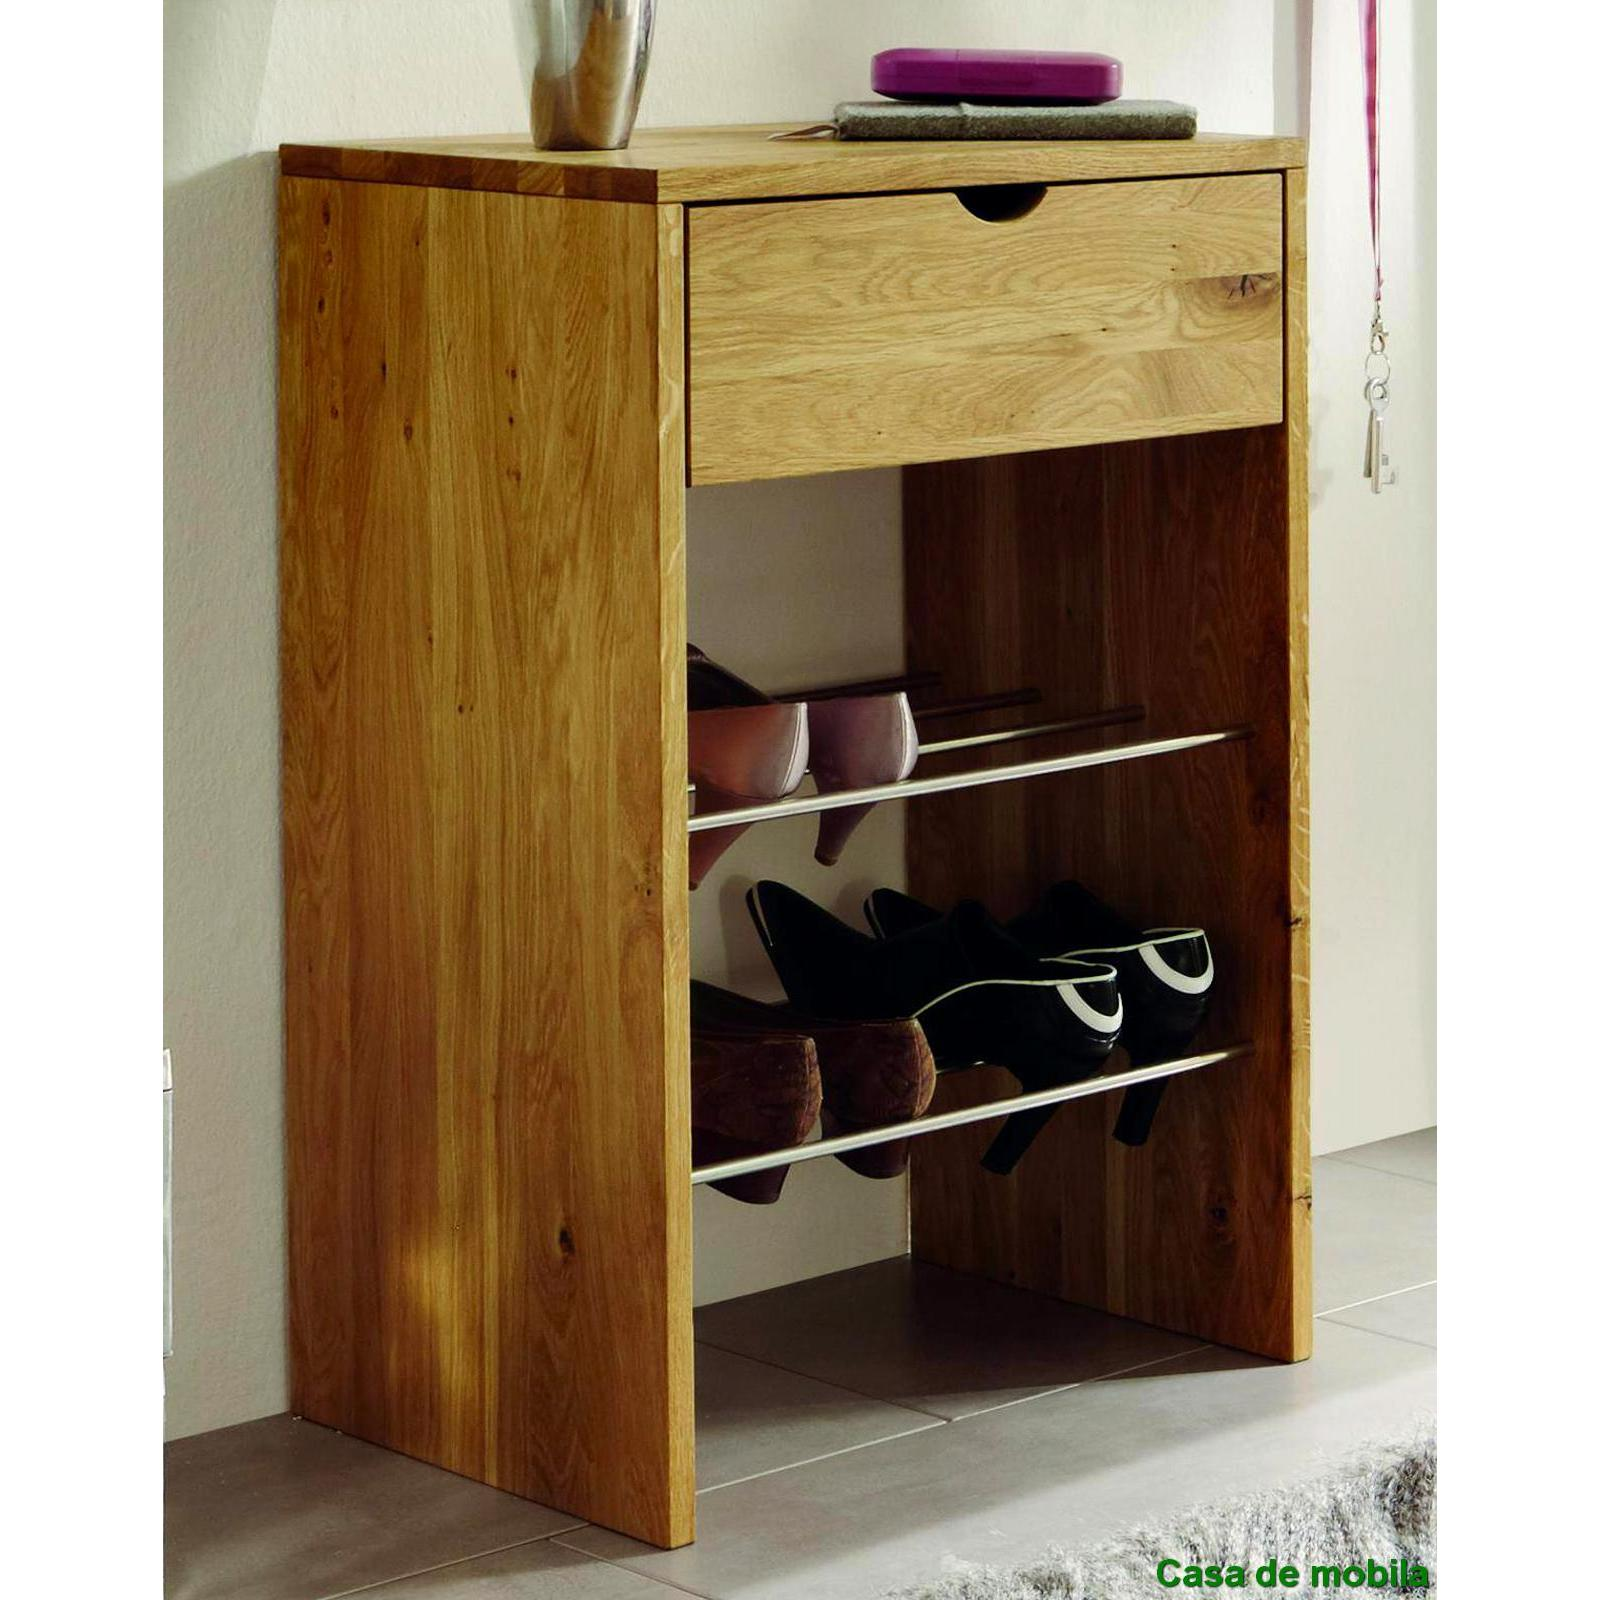 schuhschrank schuhregal flur kommode schuhkommode wilde iche massiv holz ge lt ebay. Black Bedroom Furniture Sets. Home Design Ideas